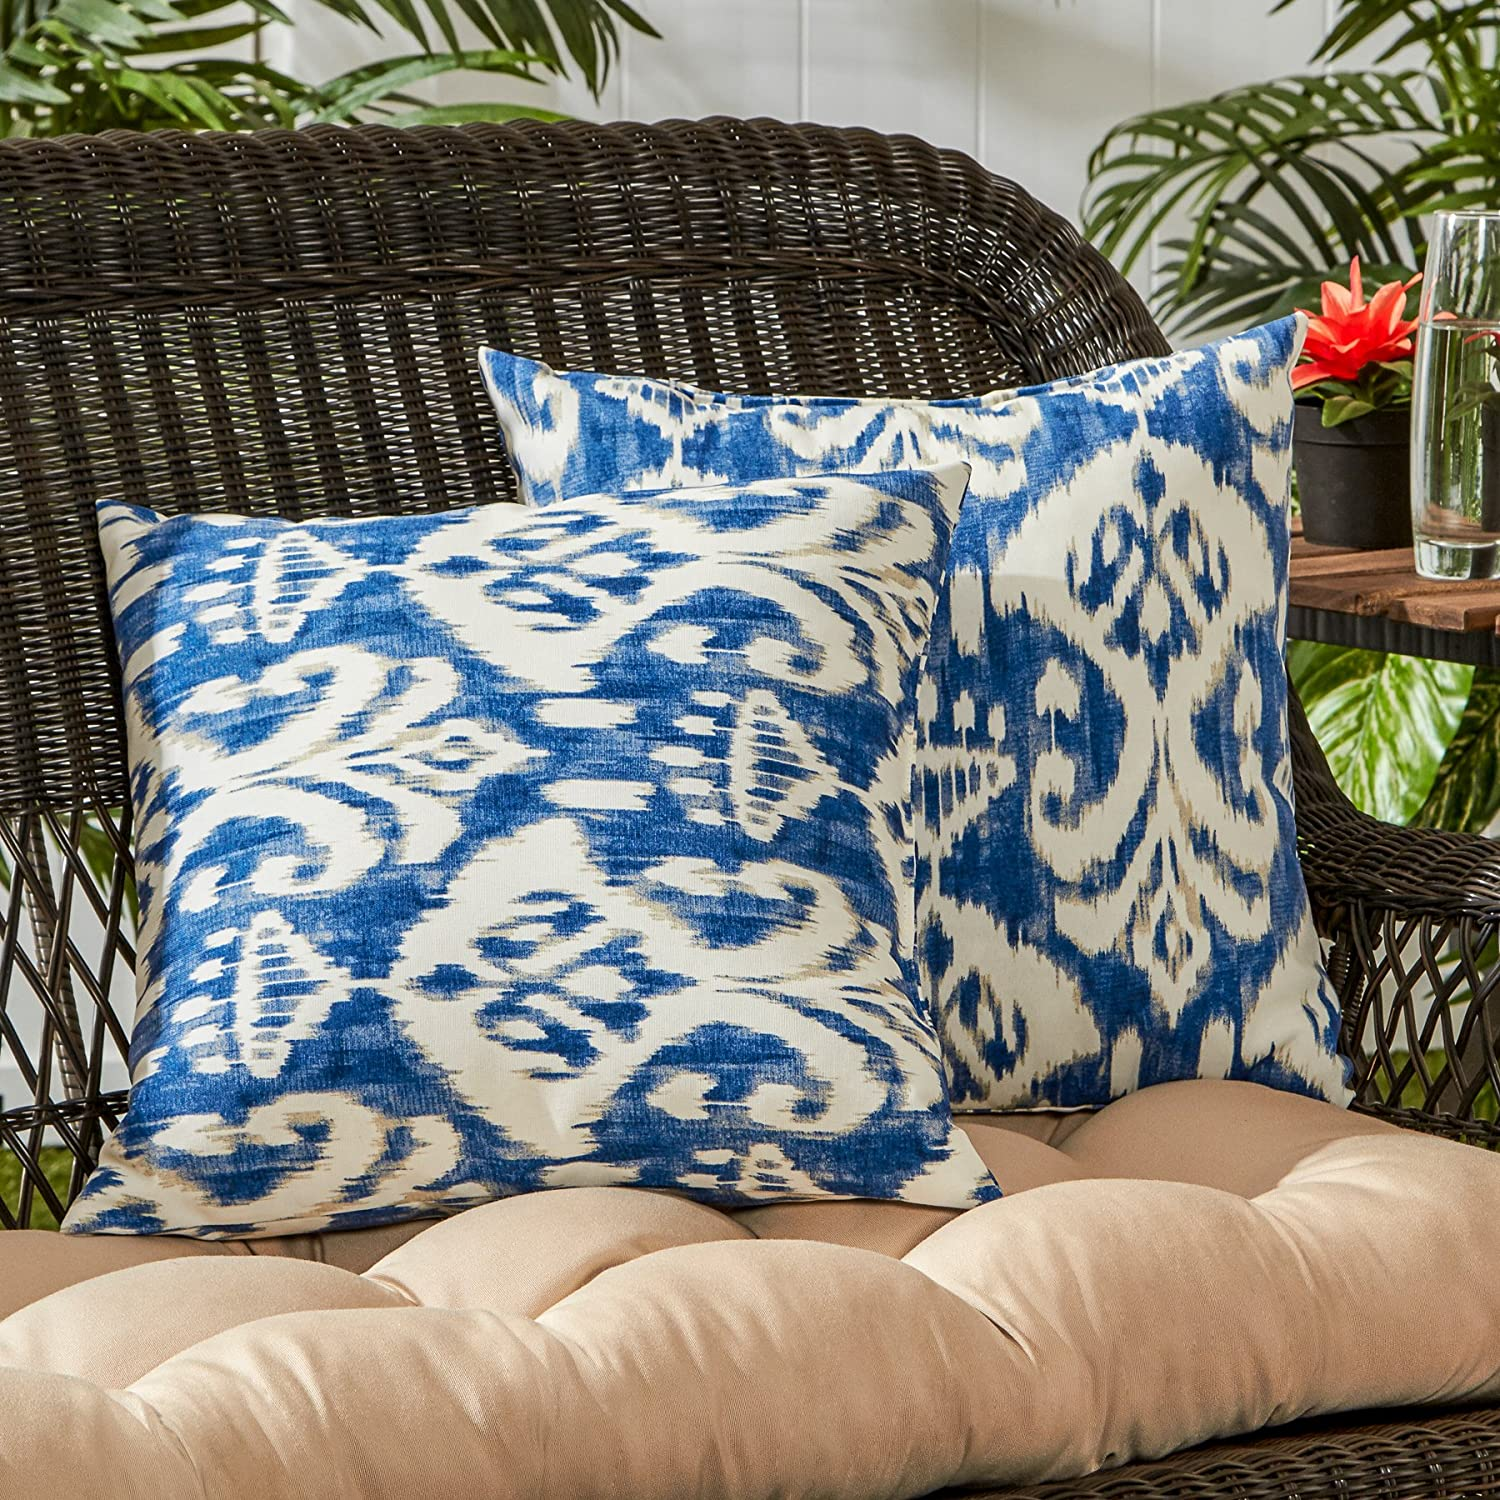 Set of 2 Greendale Home Fashions AZ4803S2-SUNSET Adobe Stripe Outdoor 17-inch Square Throw Pillow